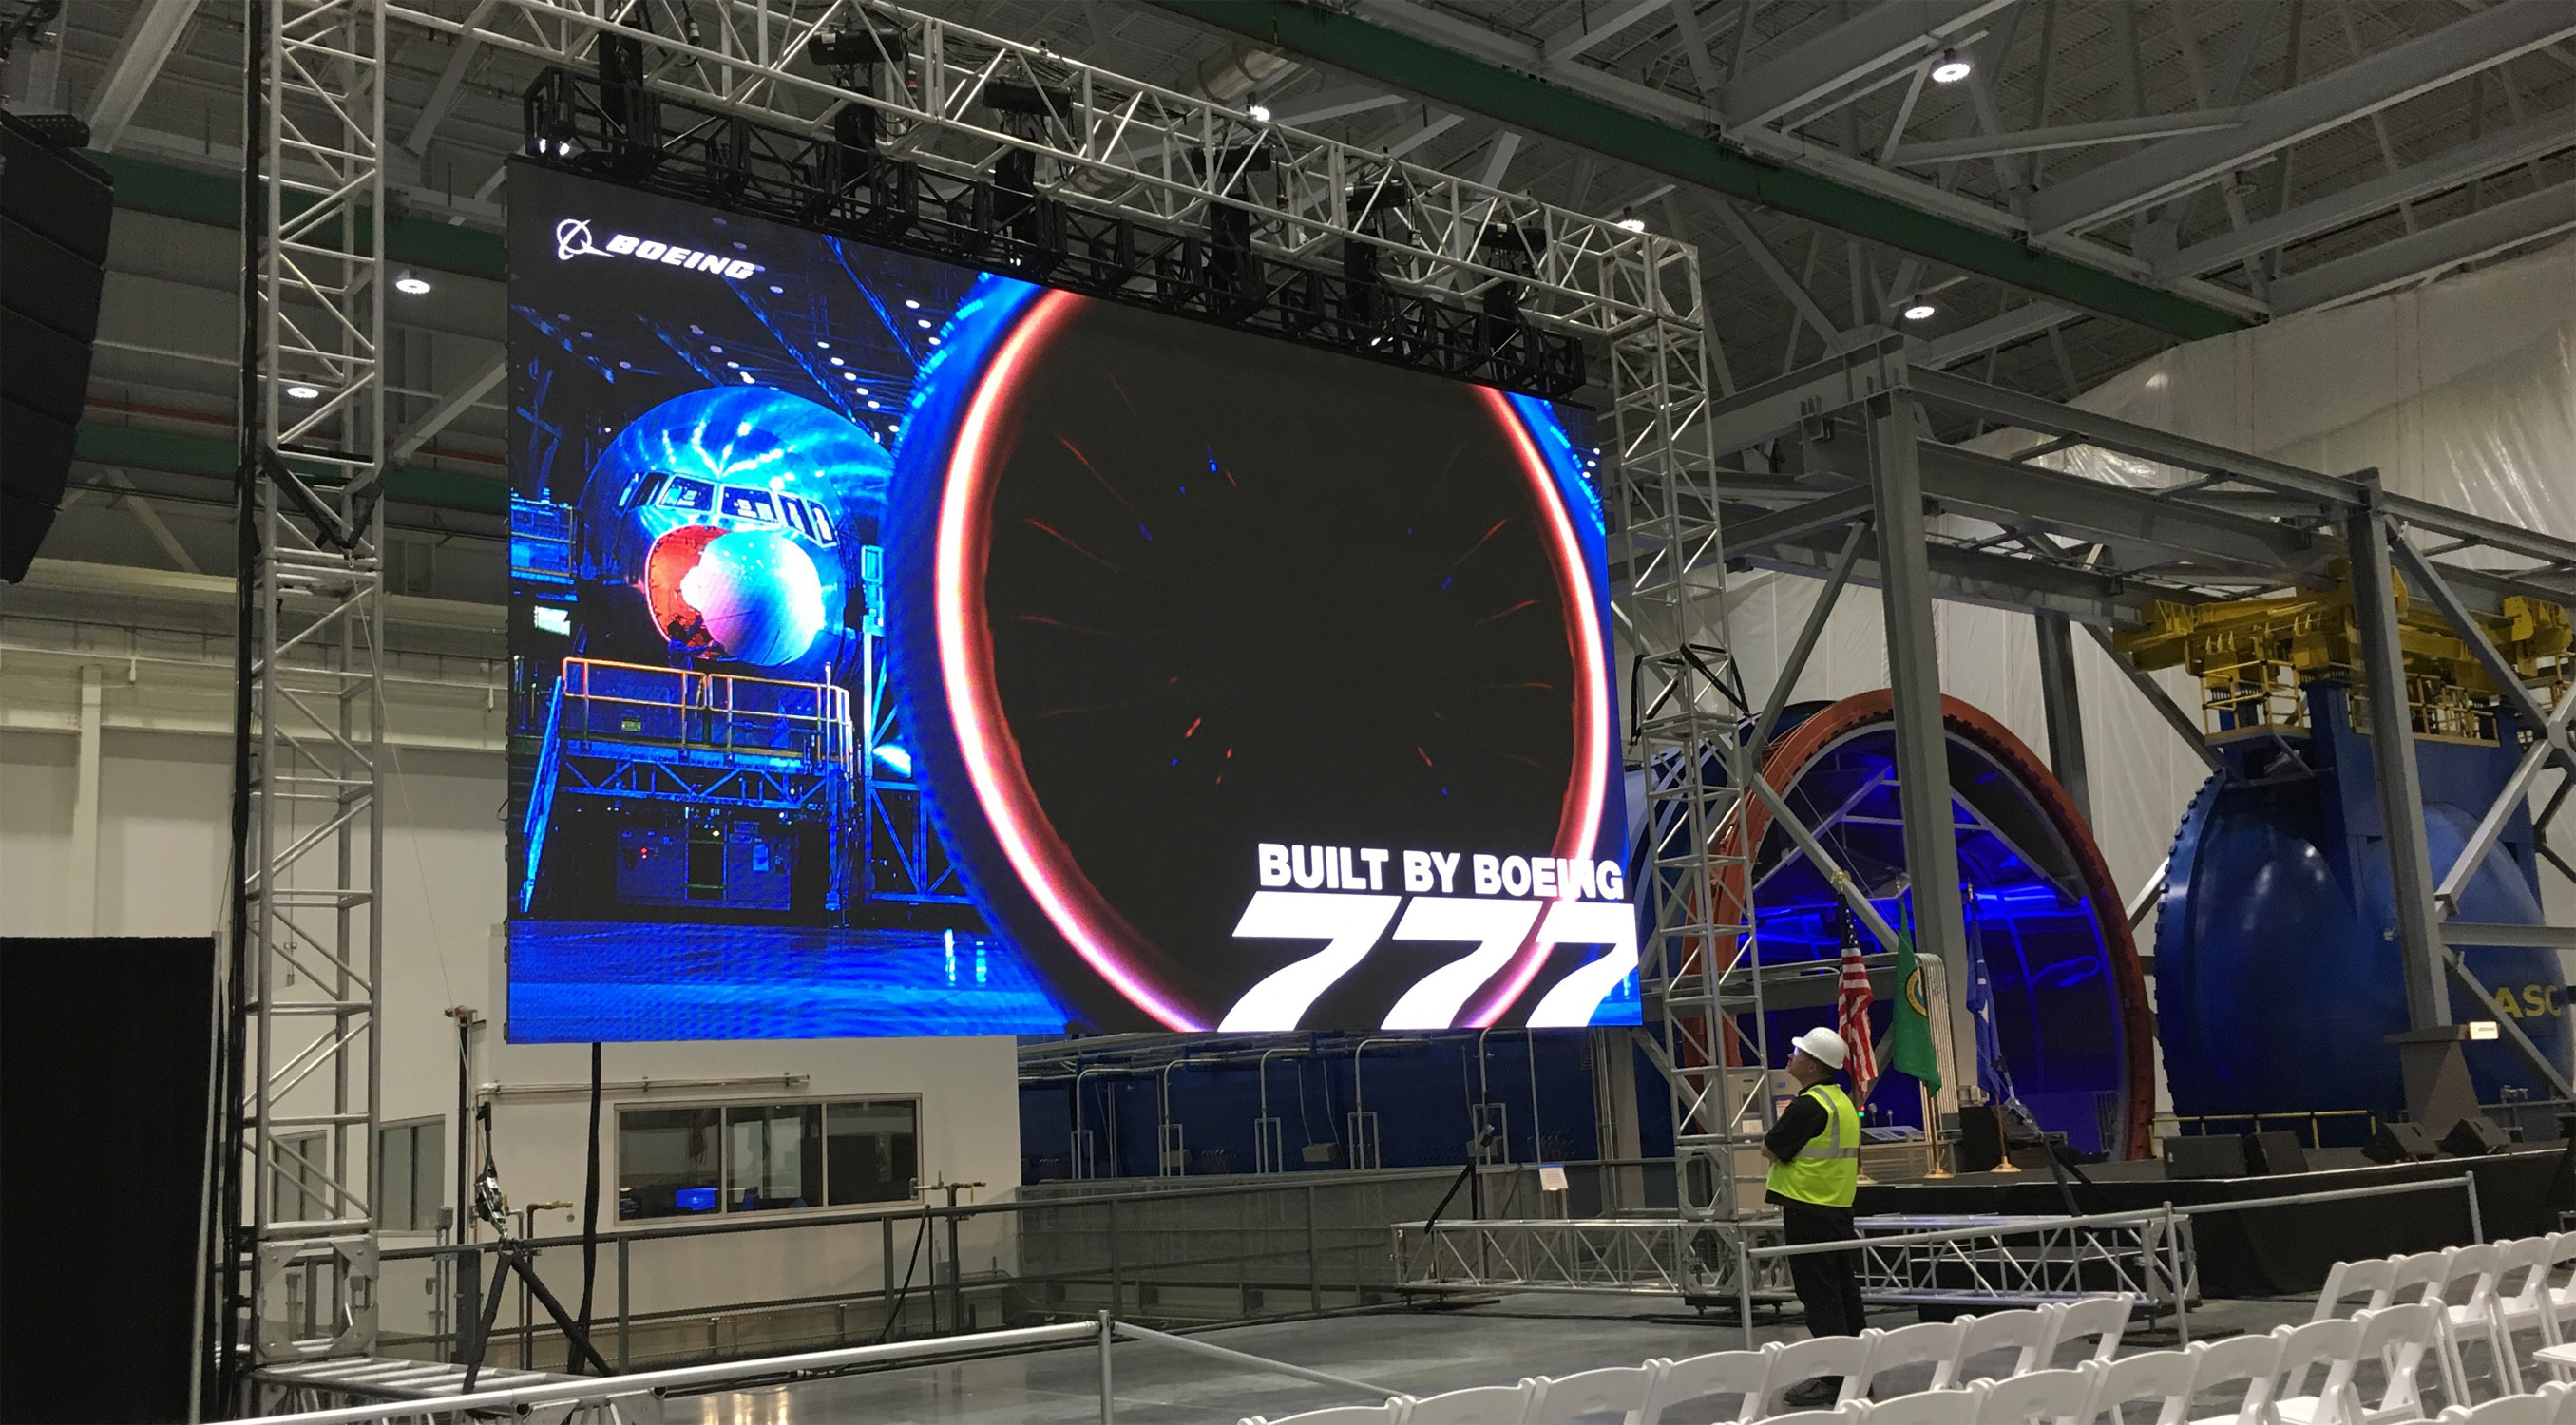 27' x 15' LED video wall